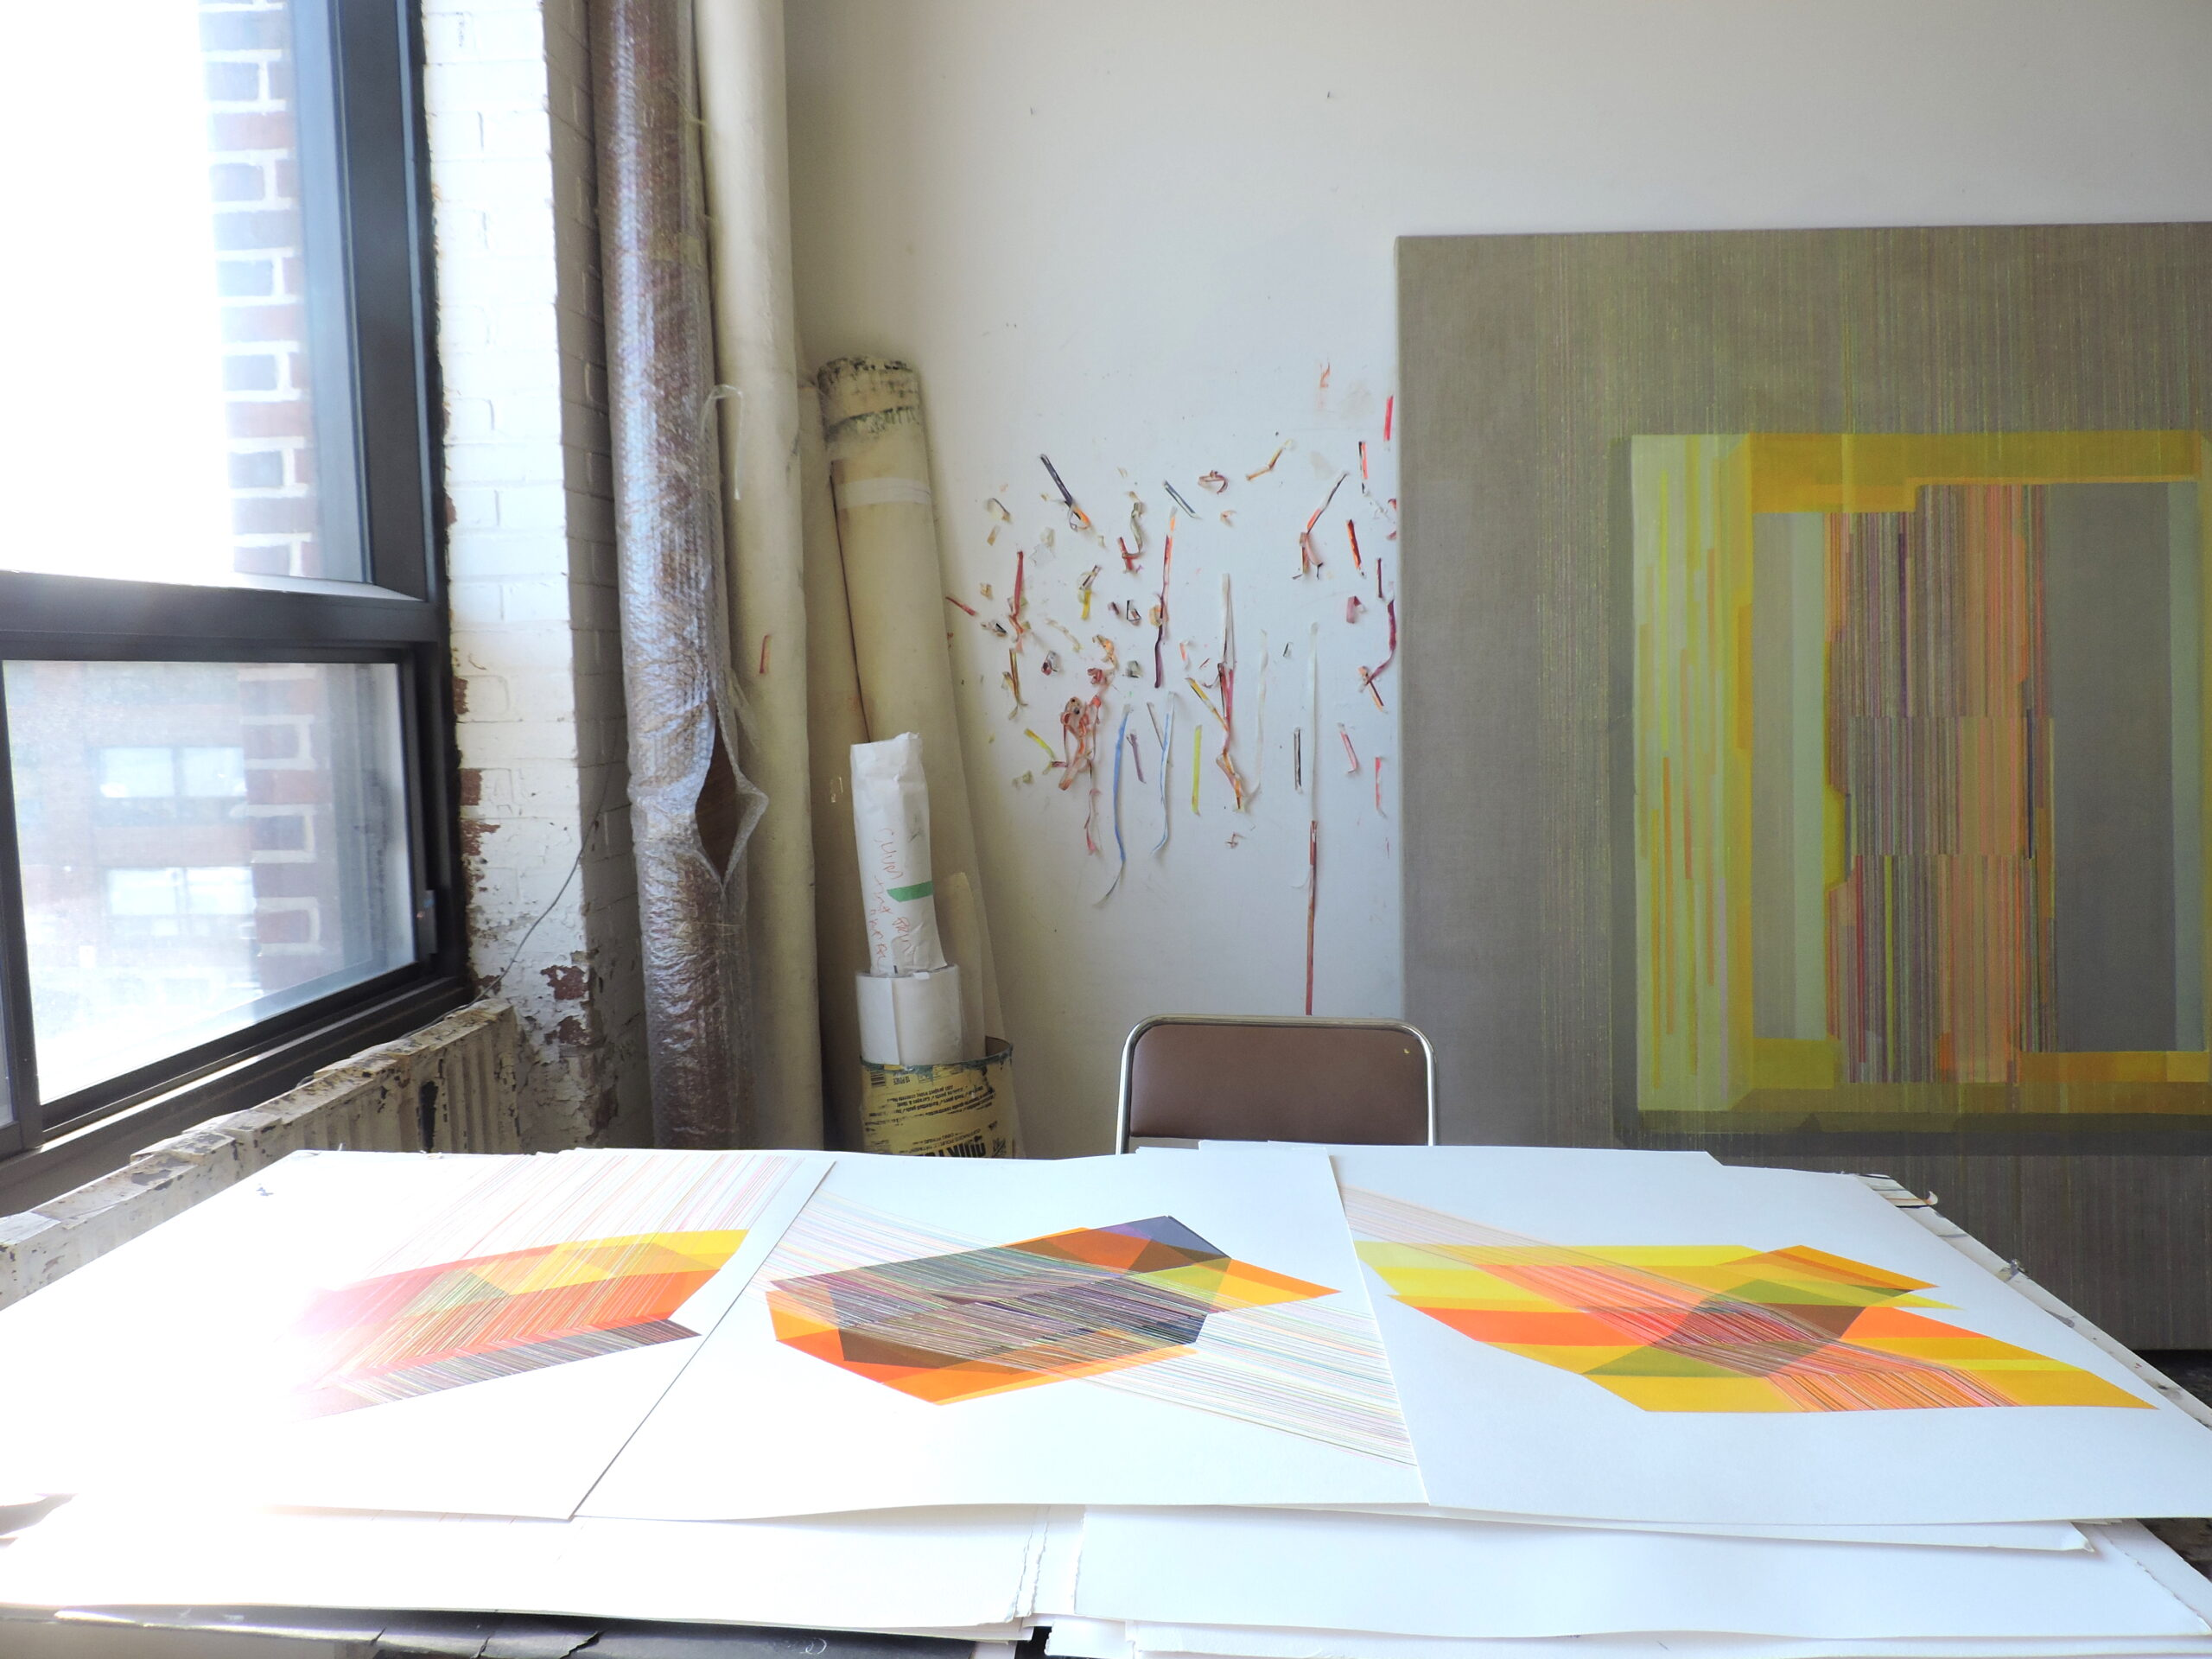 works on paper in studio by Antonietta Grassi.